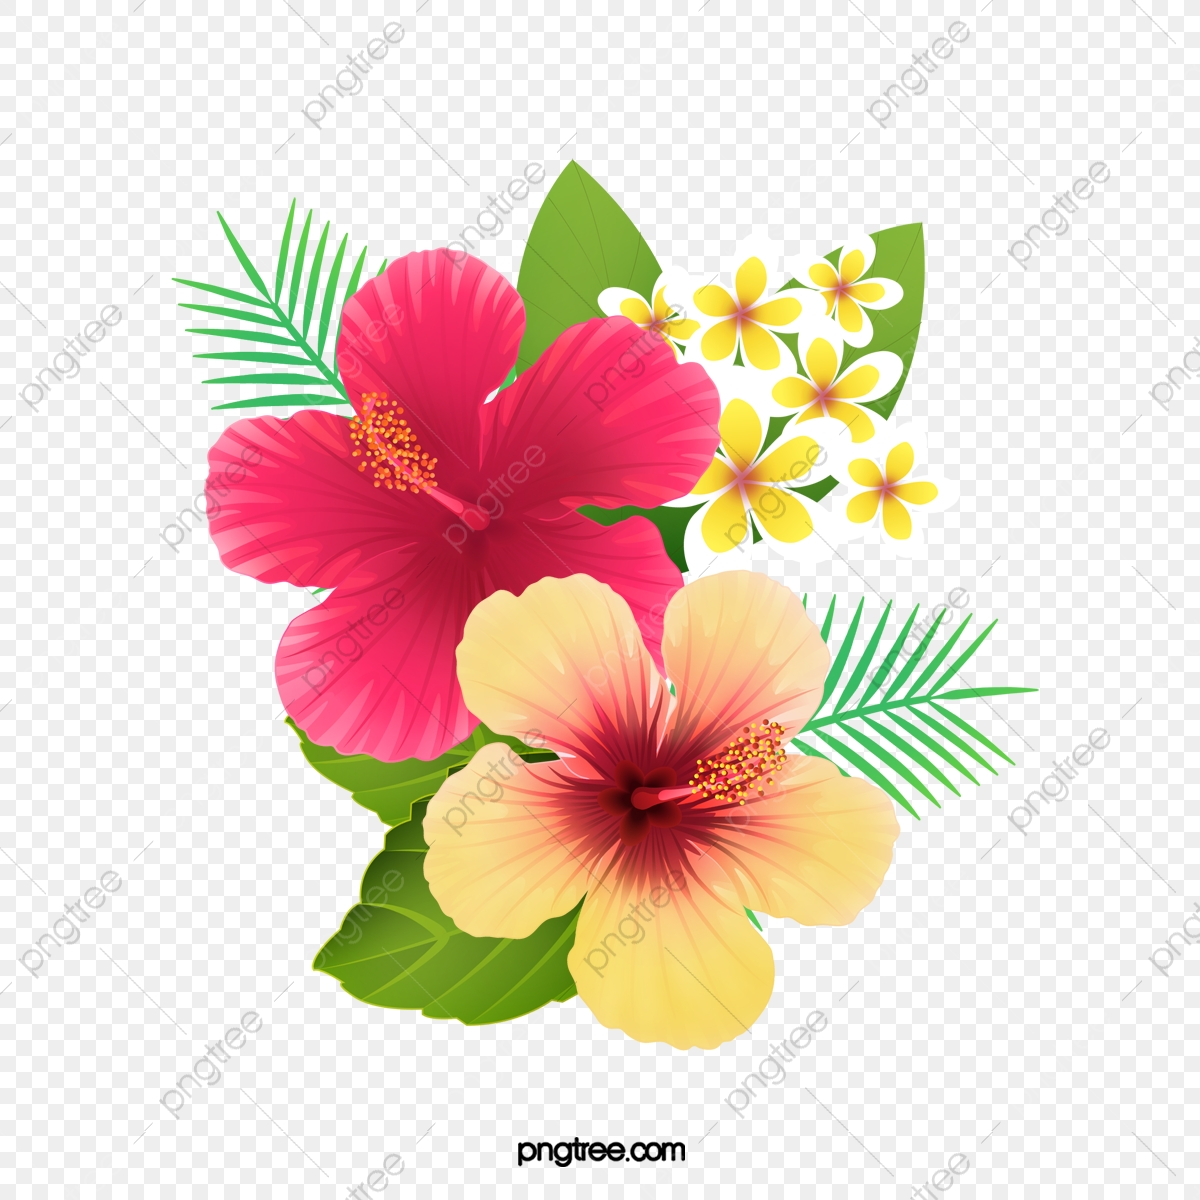 Fresh Hibiscus Flowers Creative Cartoon Png Transparent Image And